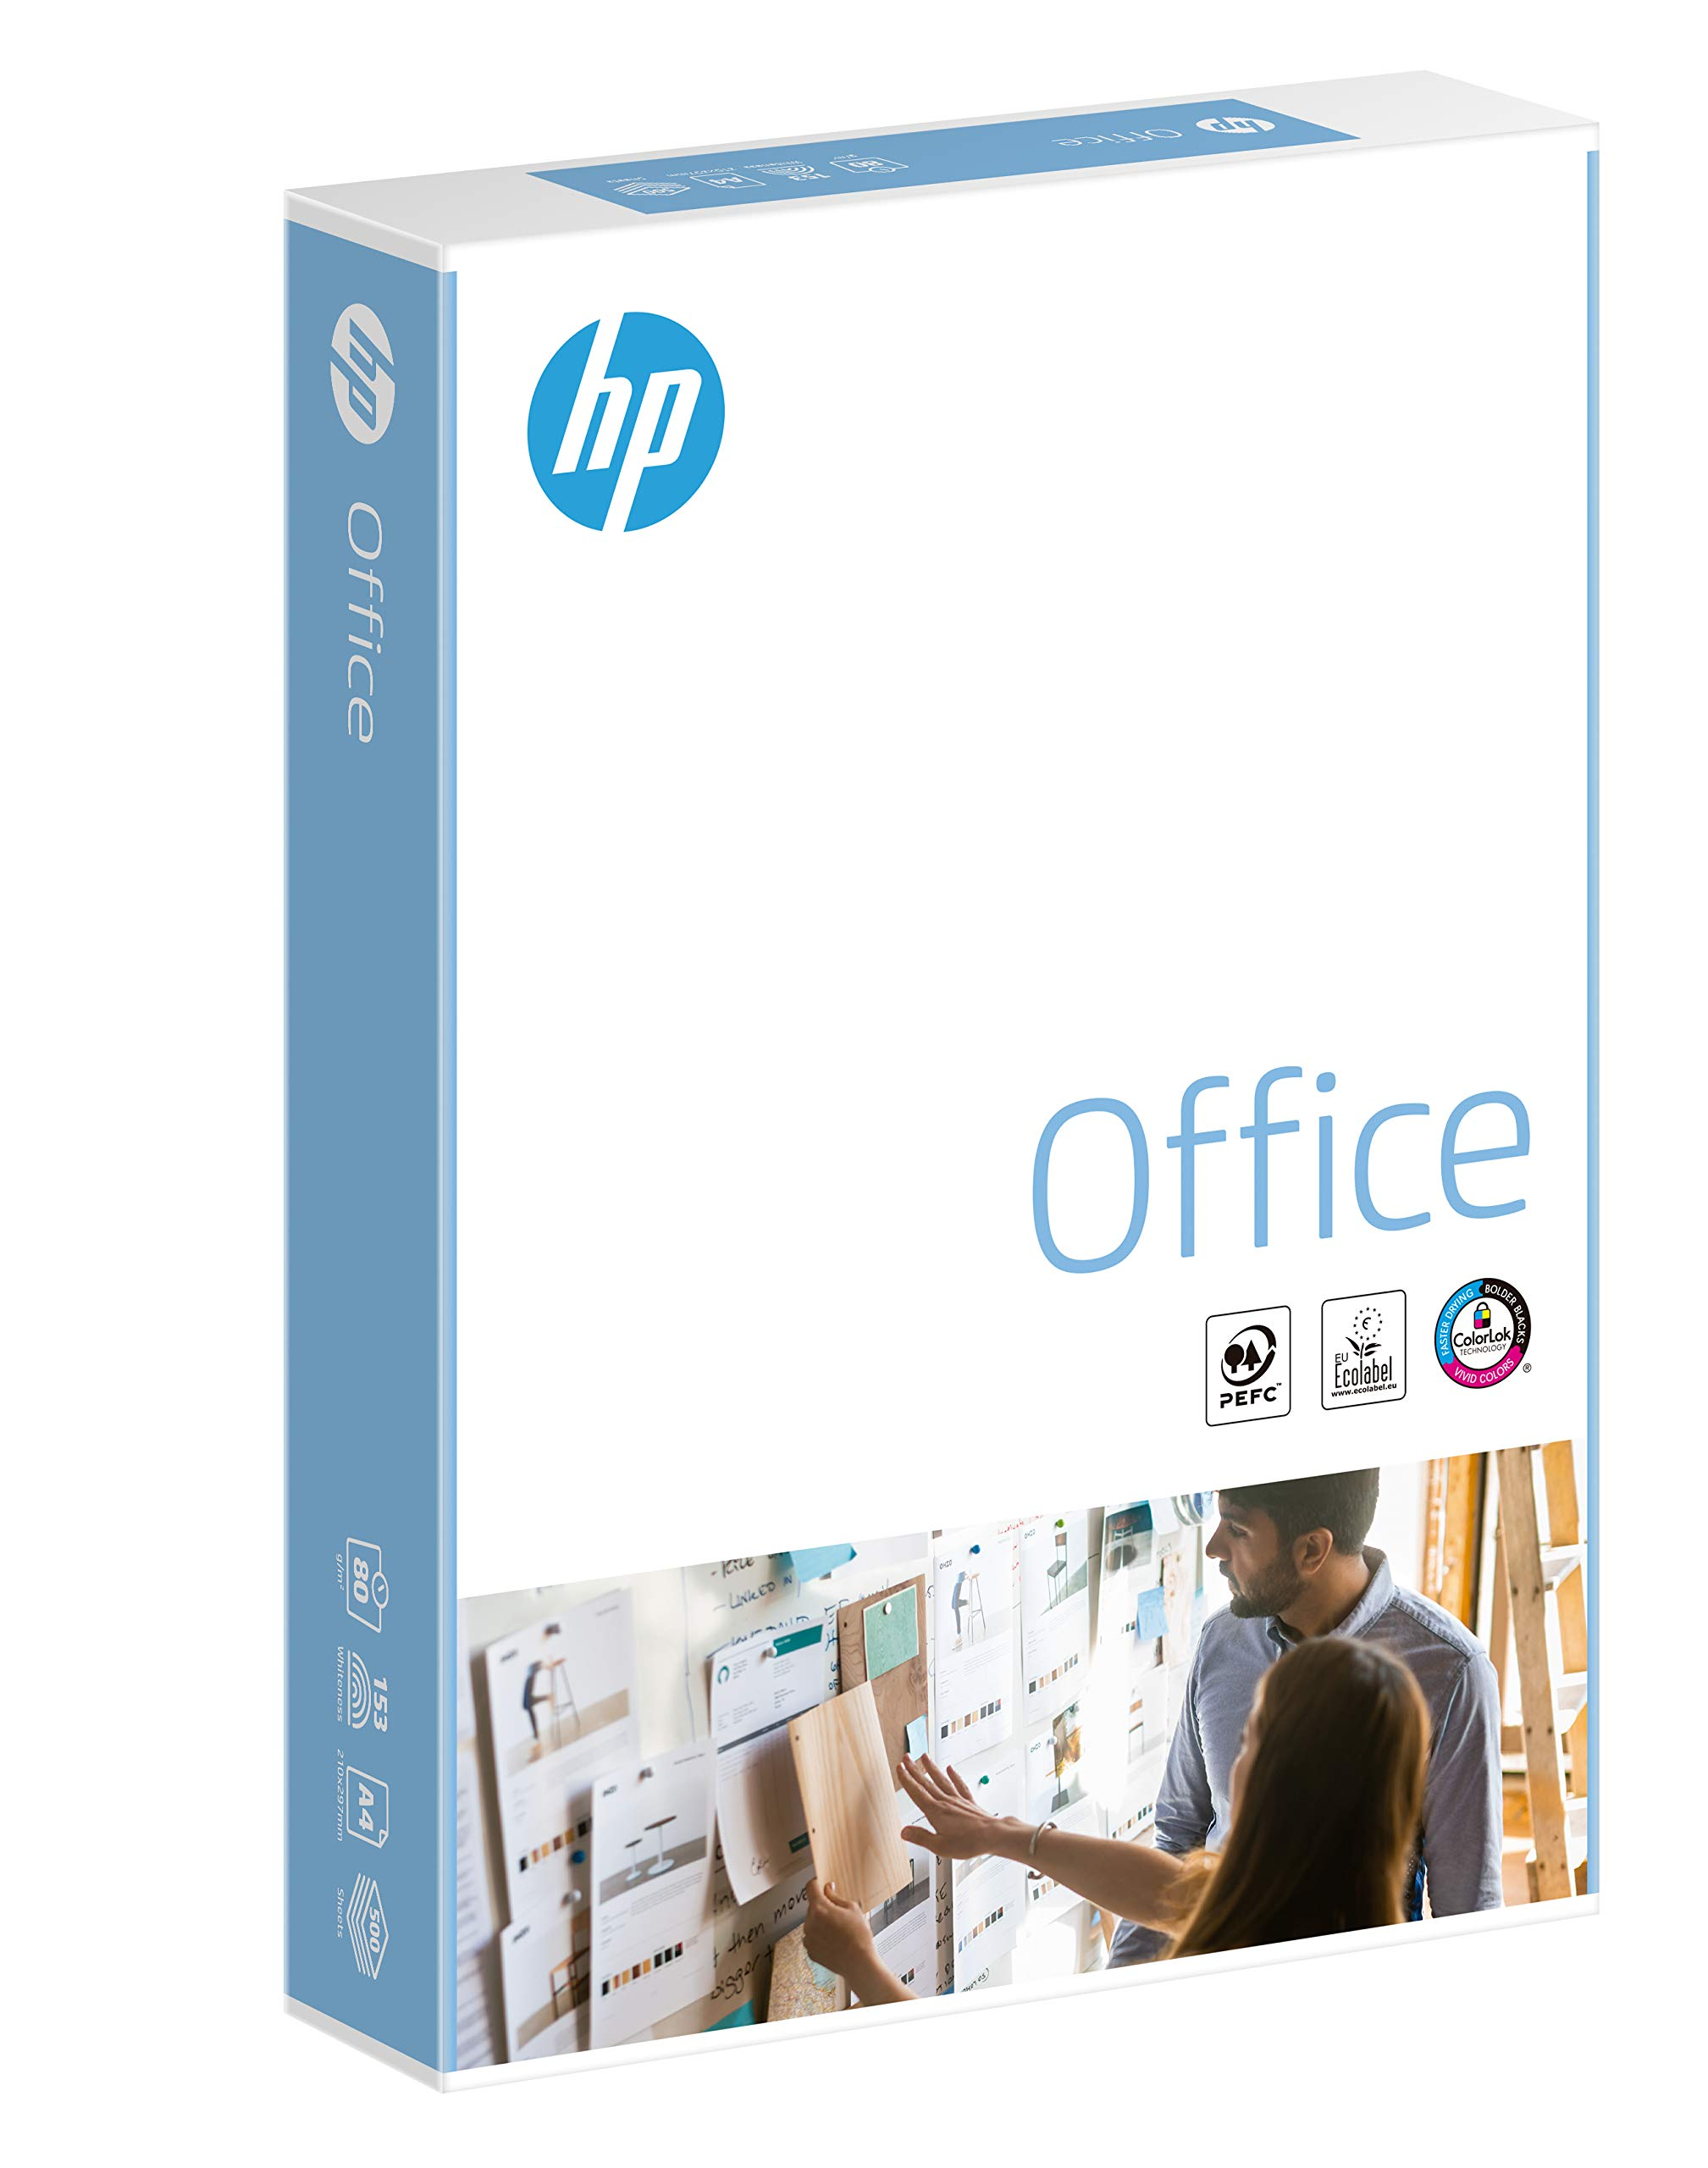 HP Office A4 210x297mm 80gsm 500sheets/Ream. by HP